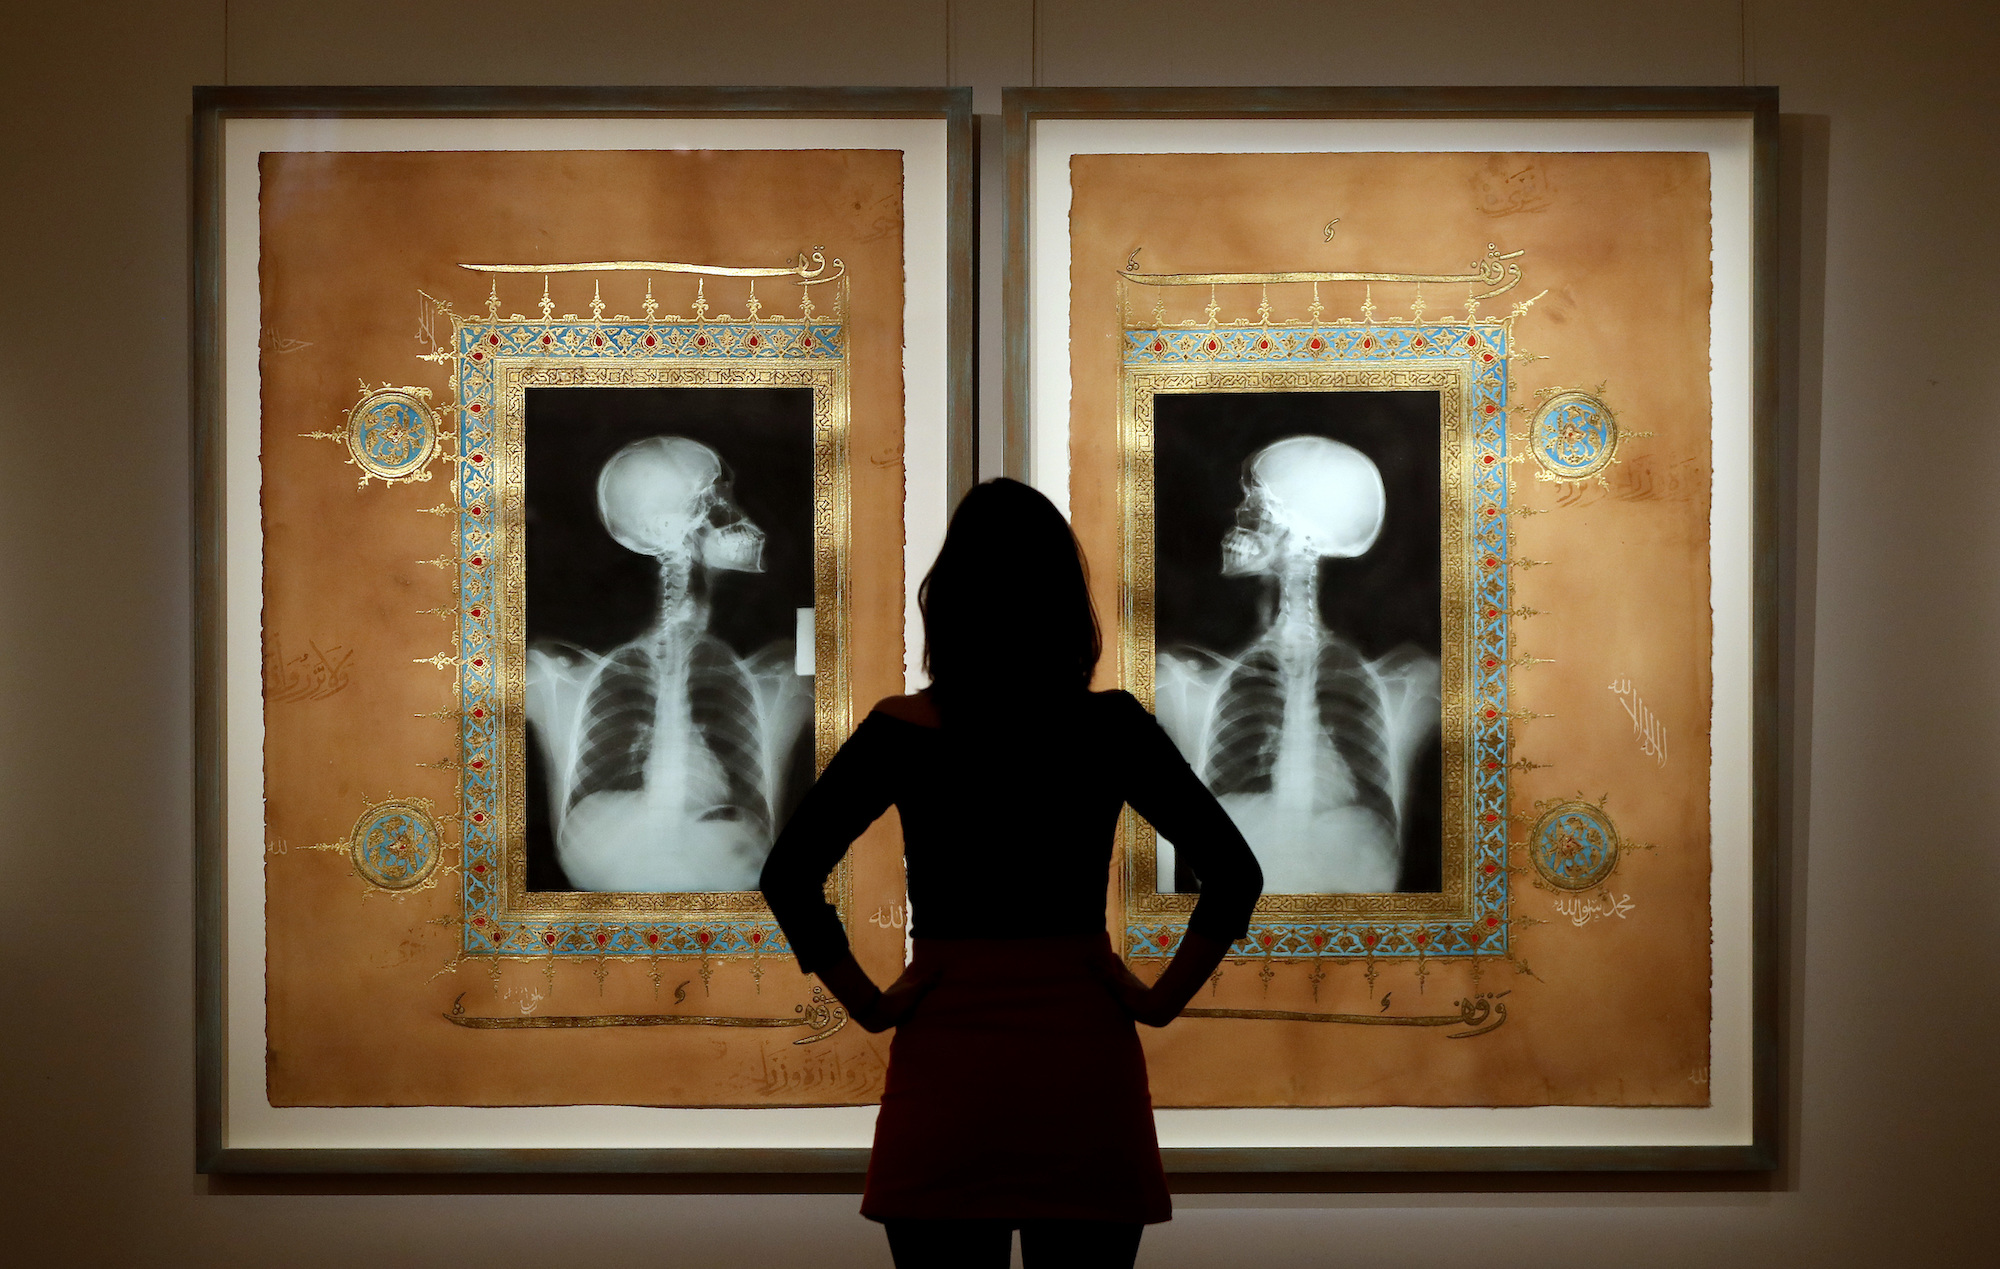 A woman looks toward artwork by Saudi artist Ahmed Mater on display at Sotheby's auction rooms in London, Oct. 13, 2016. (AP Photo/Kirsty Wigglesworth)